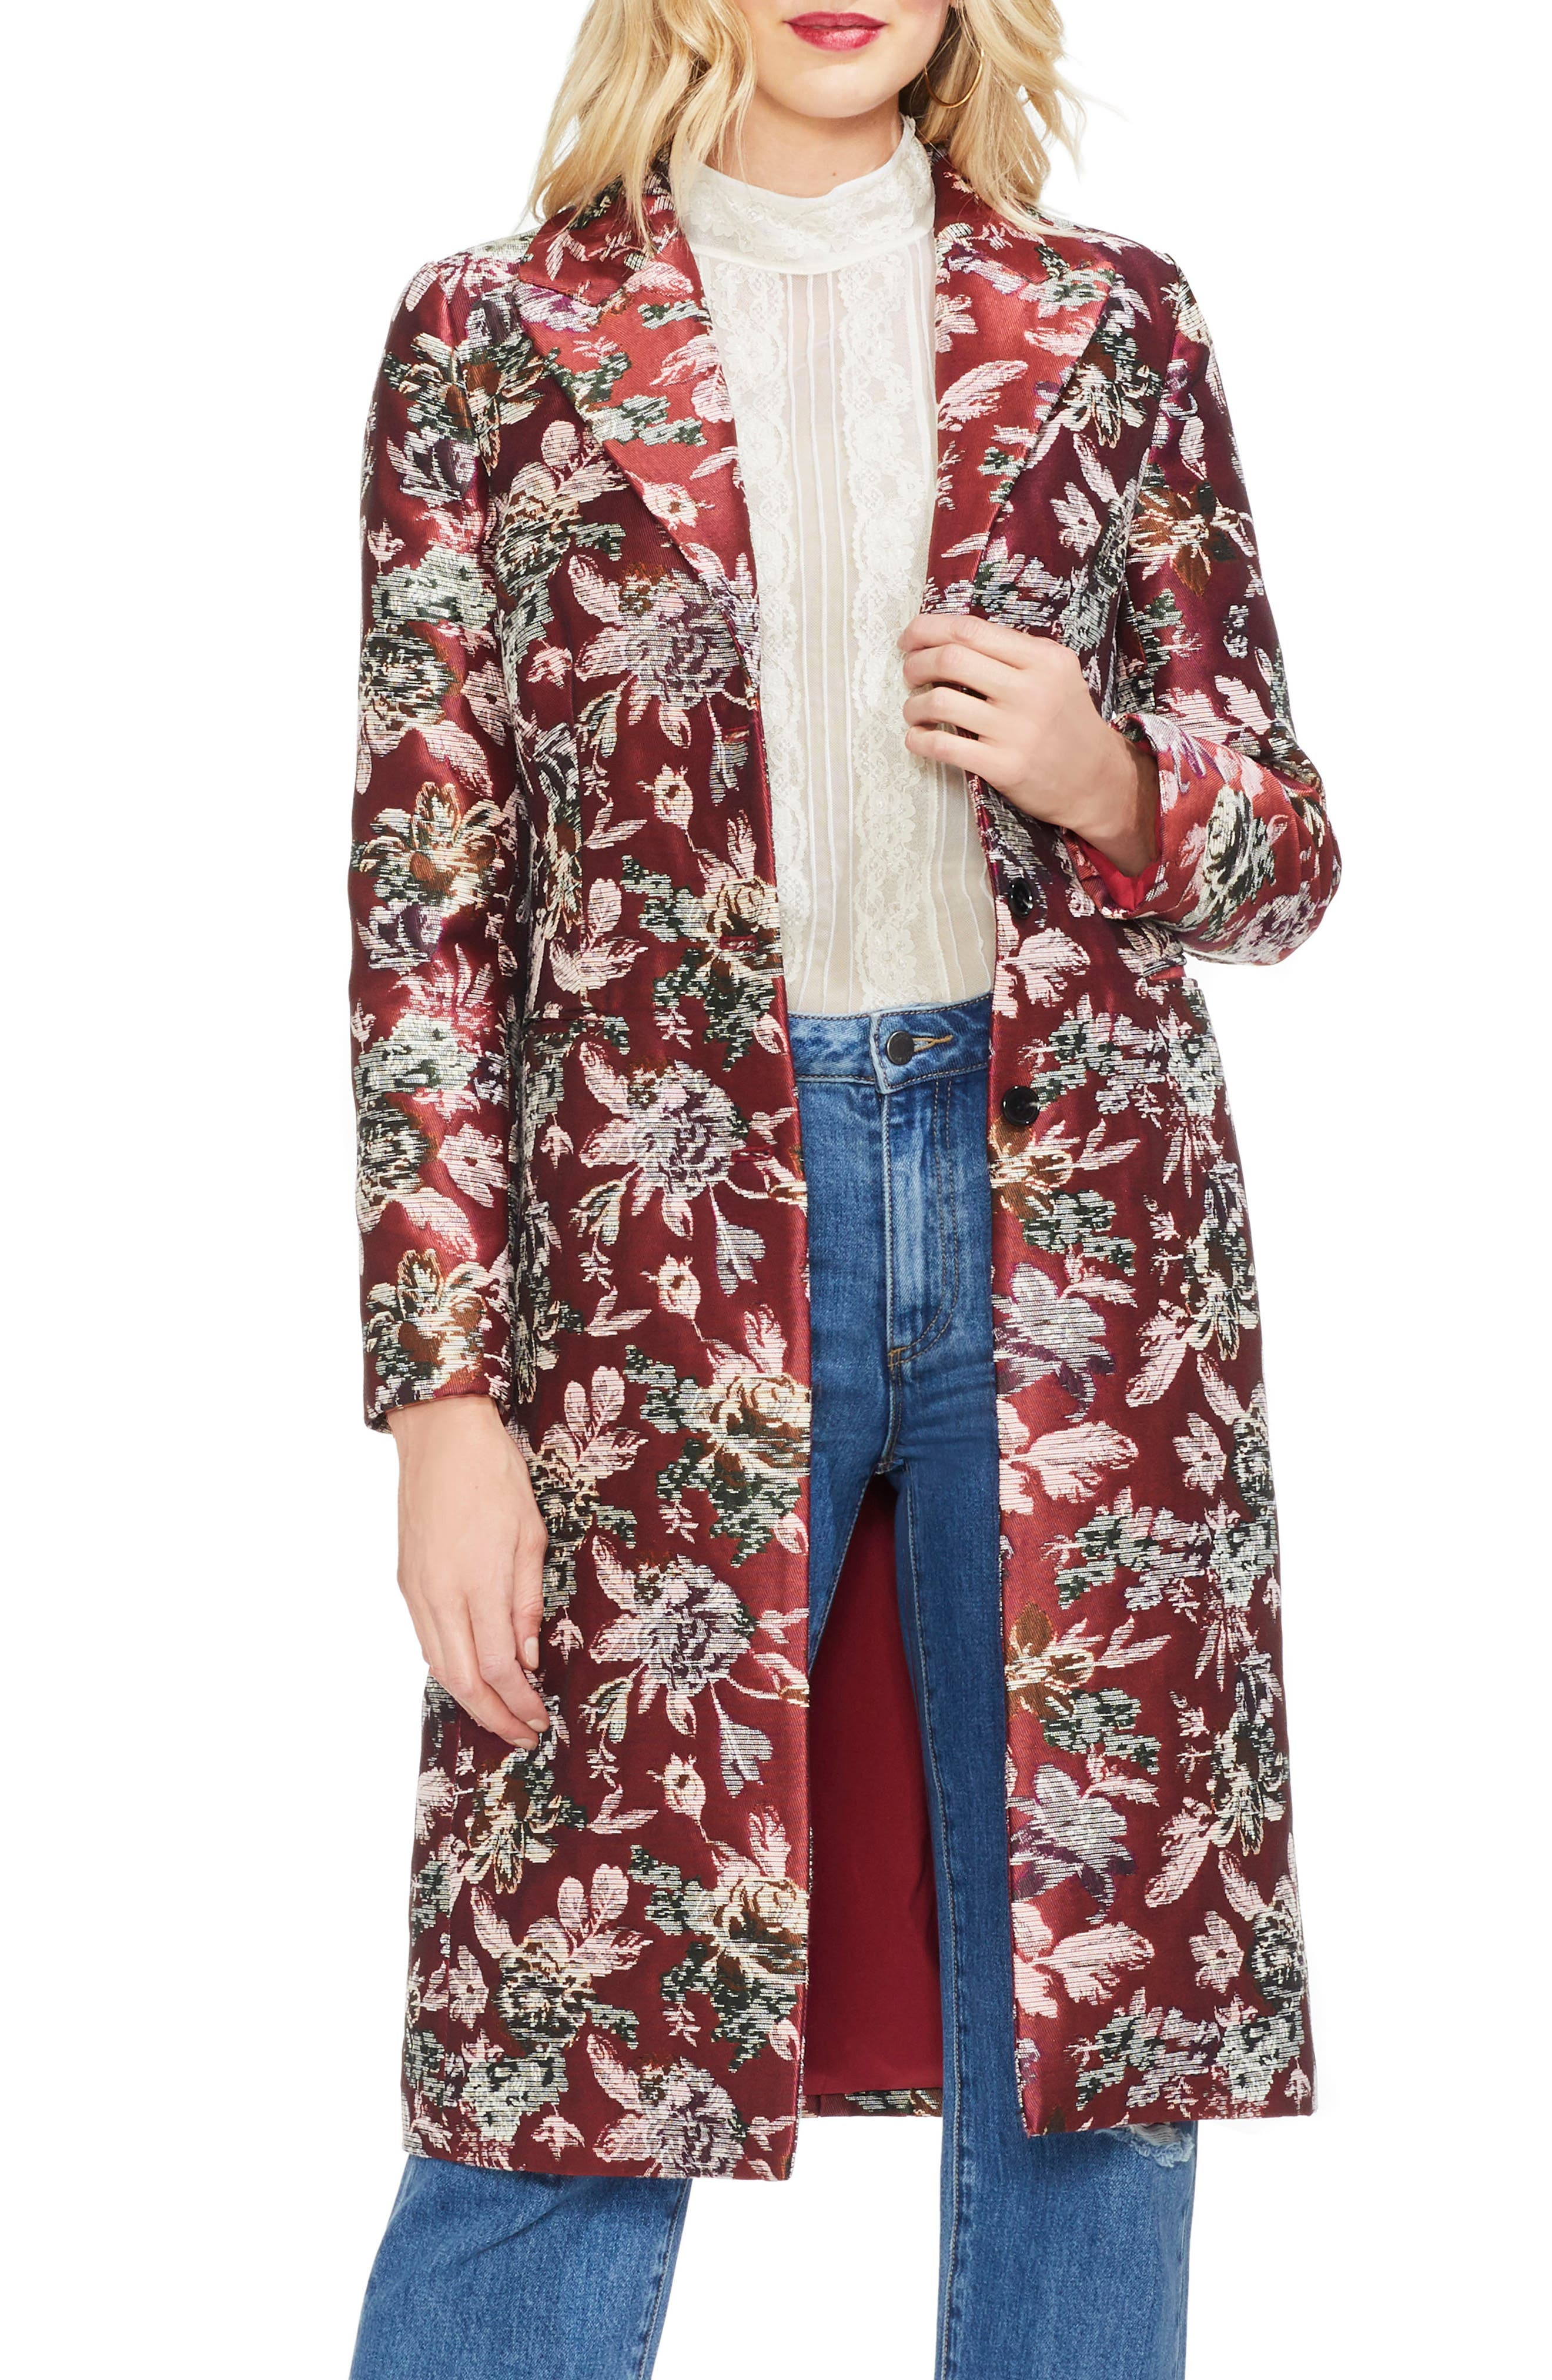 1920s Coats, Flapper Coats, 20s Jackets Womens Vince Camuto Floral Tapestry Topper Coat $113.40 AT vintagedancer.com